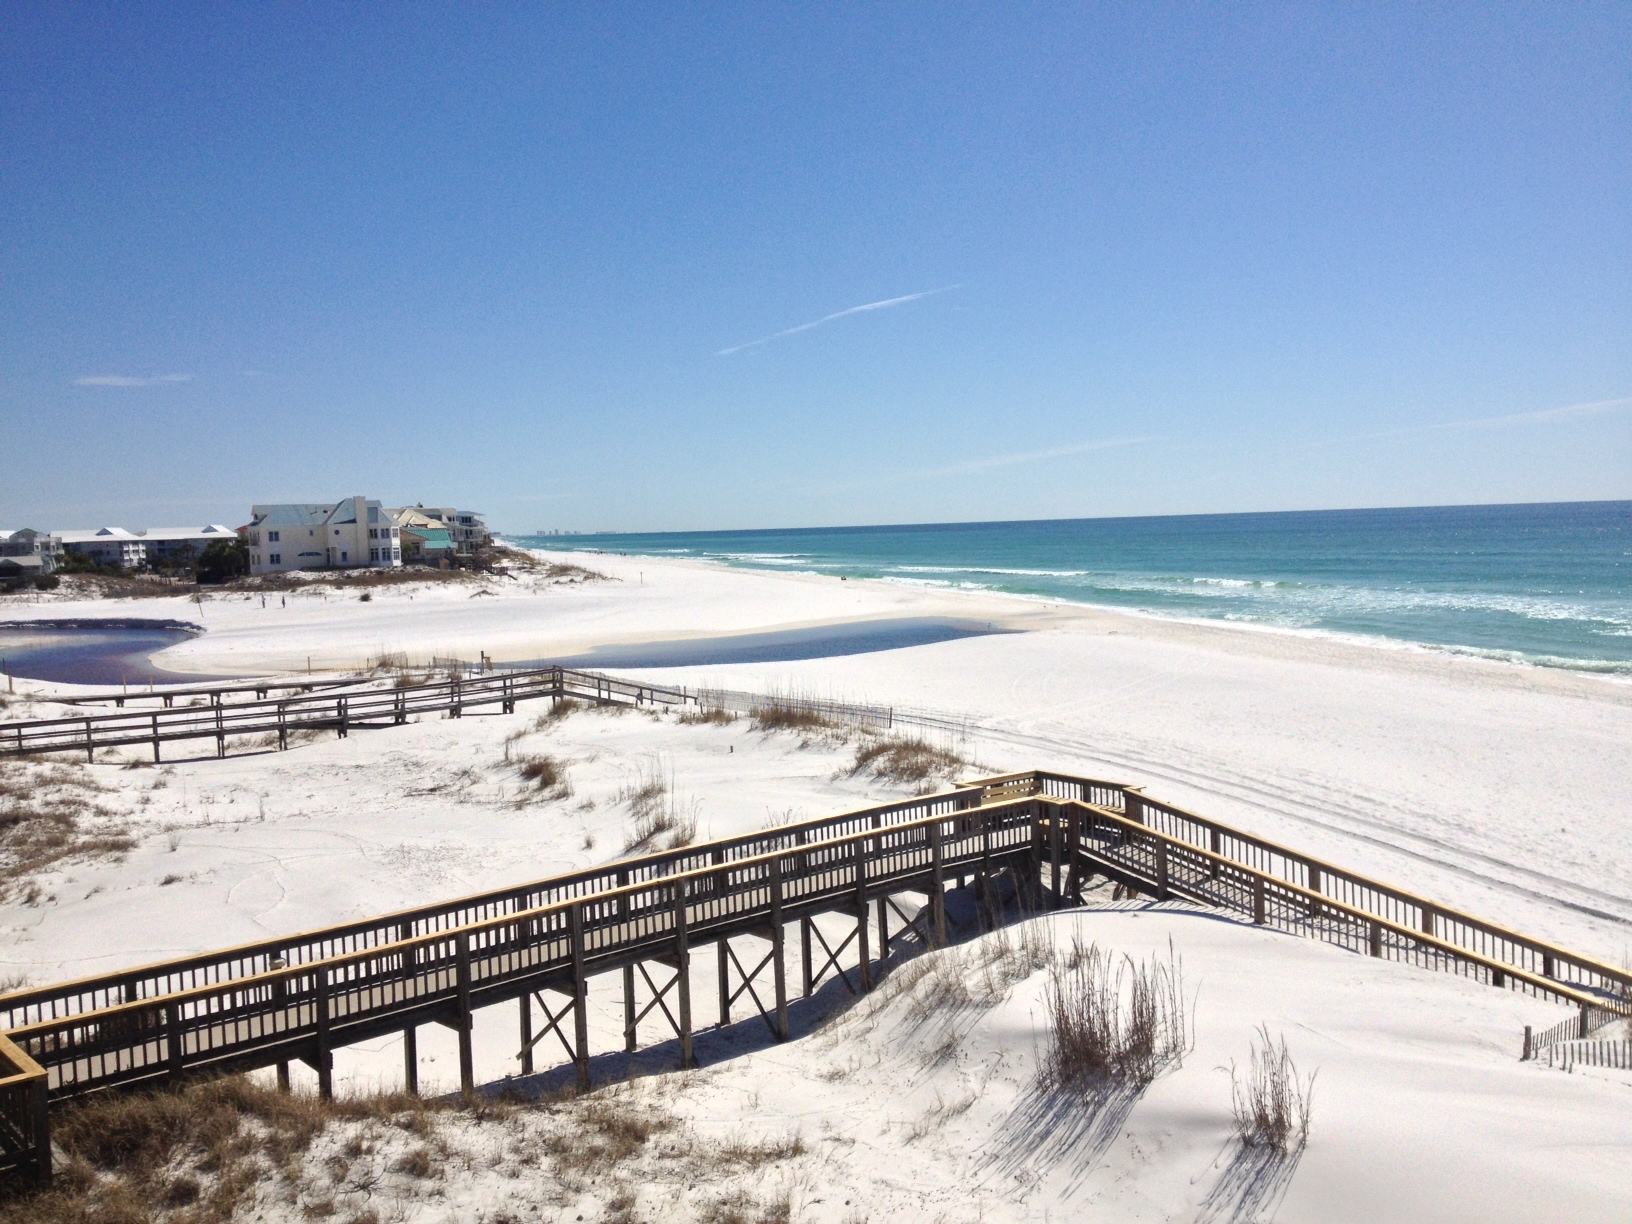 Real Estate Opportunities on 30a Under $500k